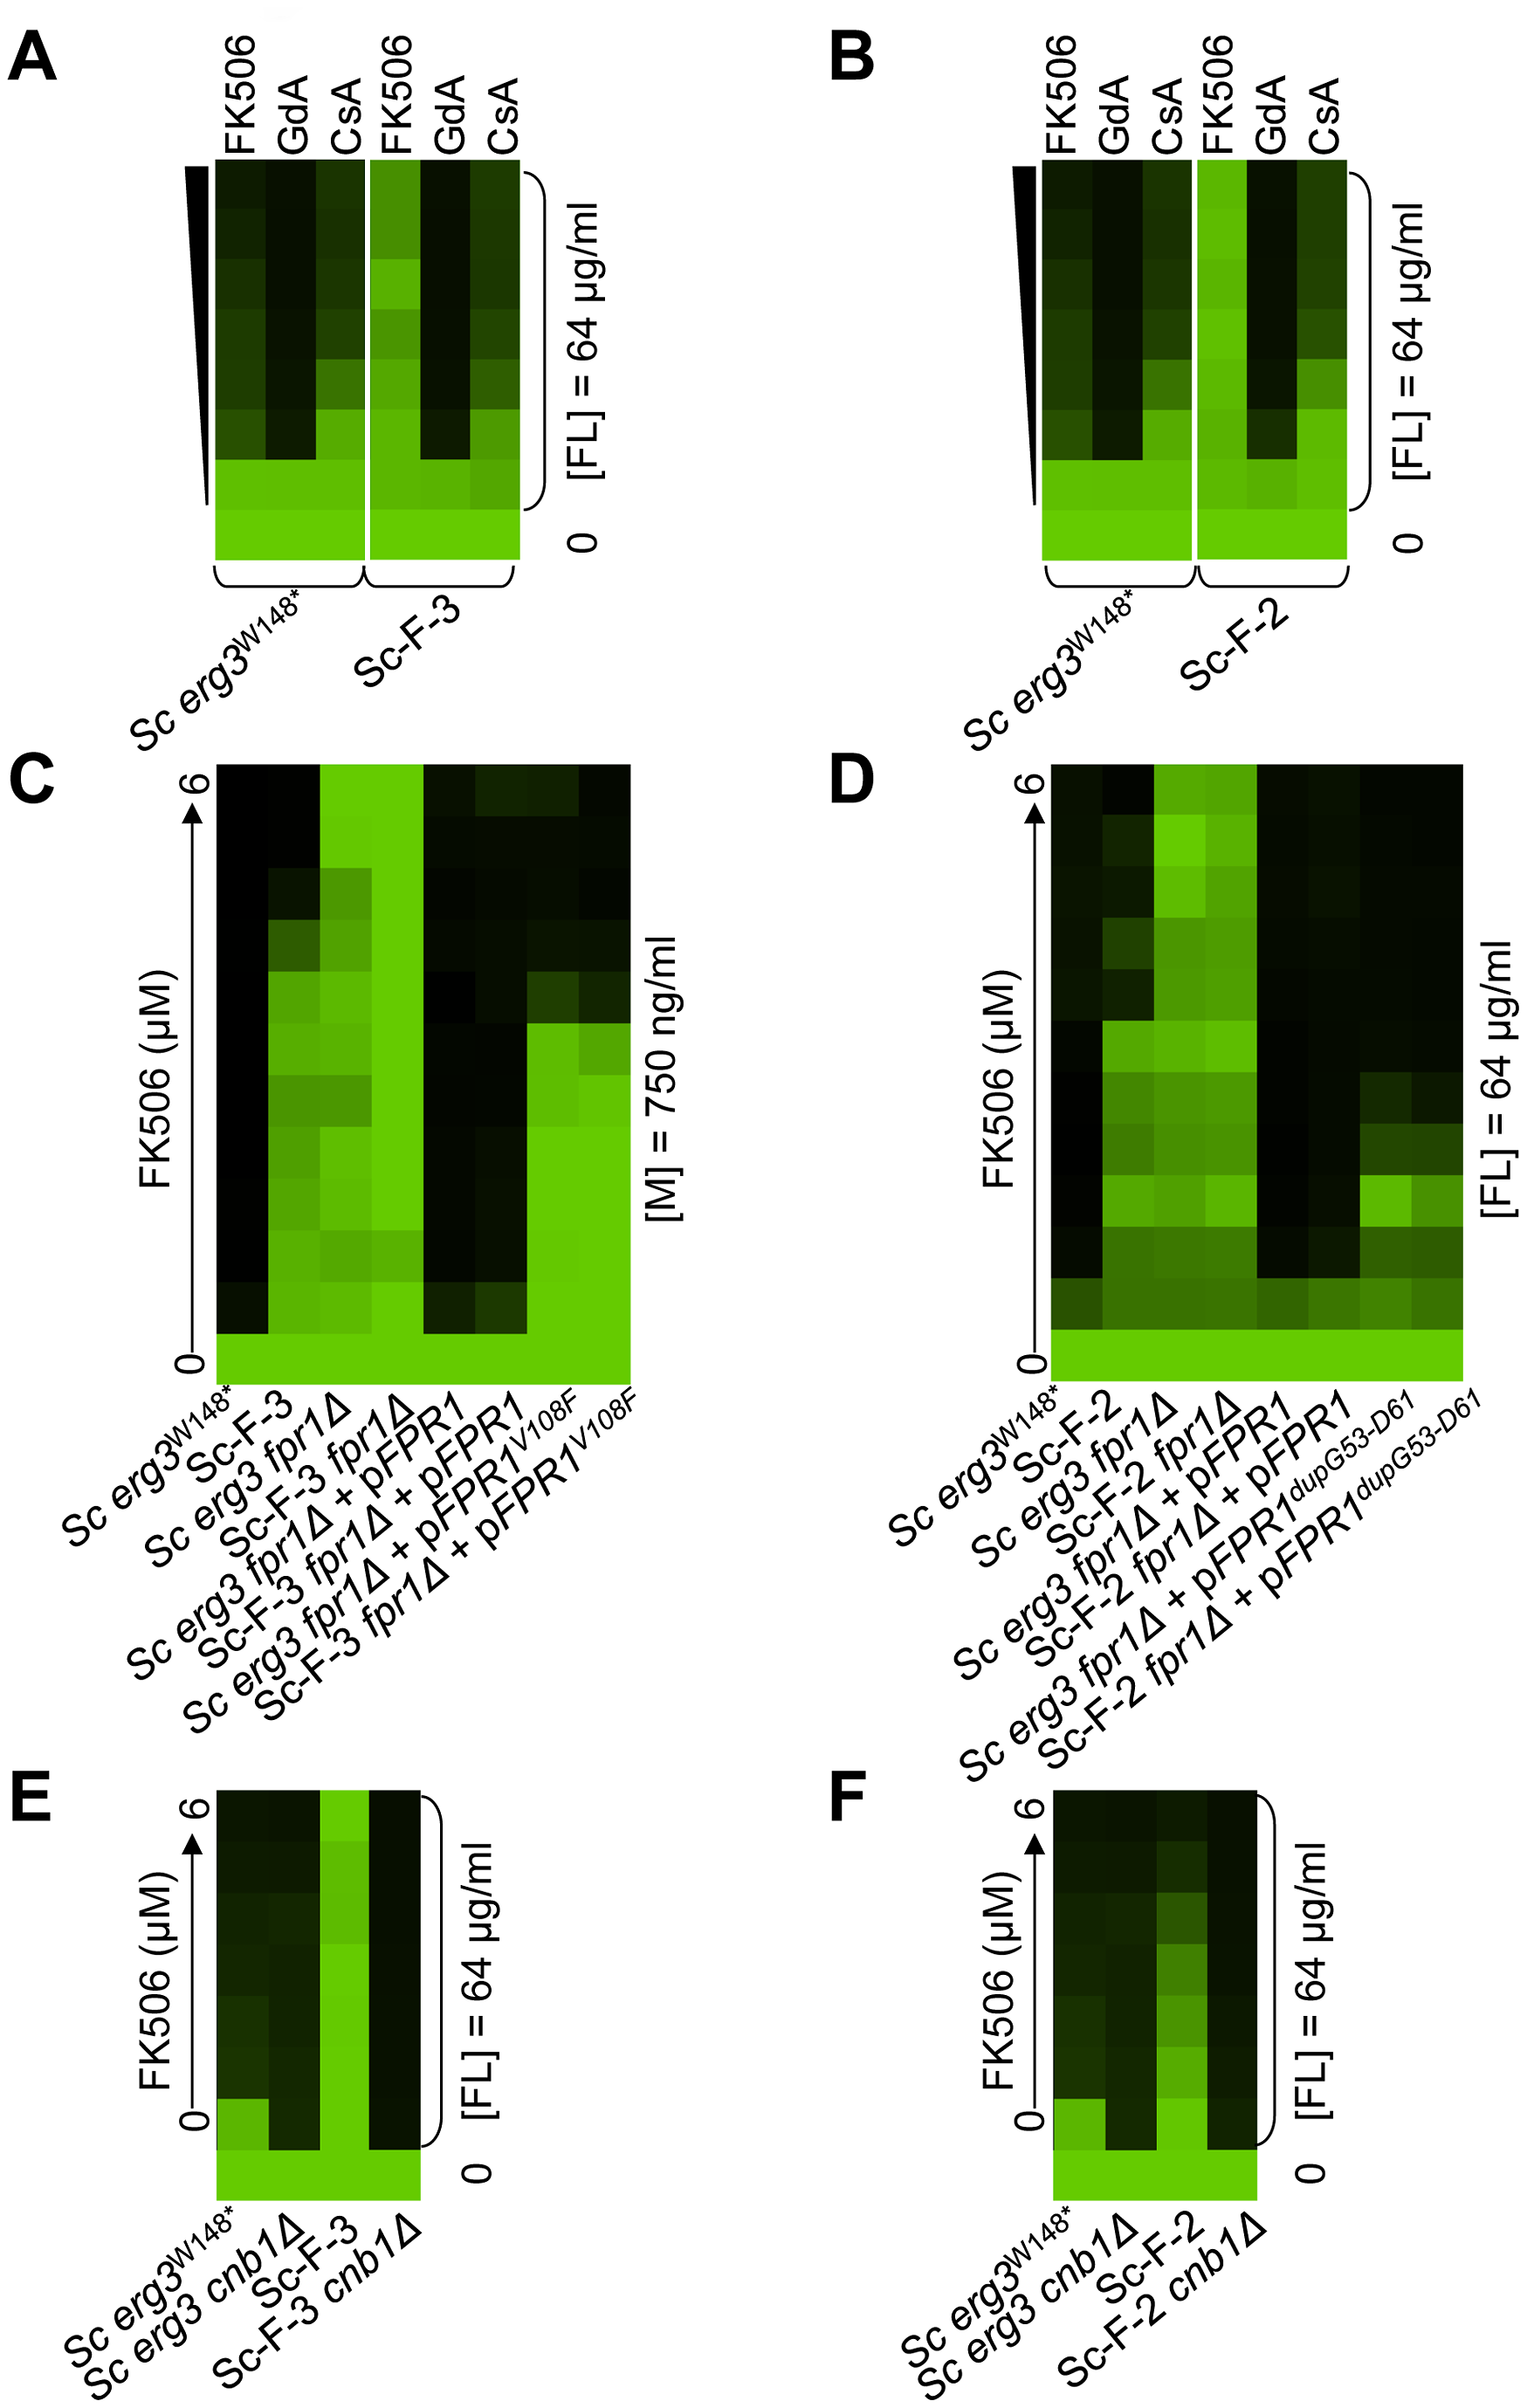 Mutations in <i>FPR1</i> confer resistance to azole and FK506 in two <i>S. cerevisiae</i> lineages.